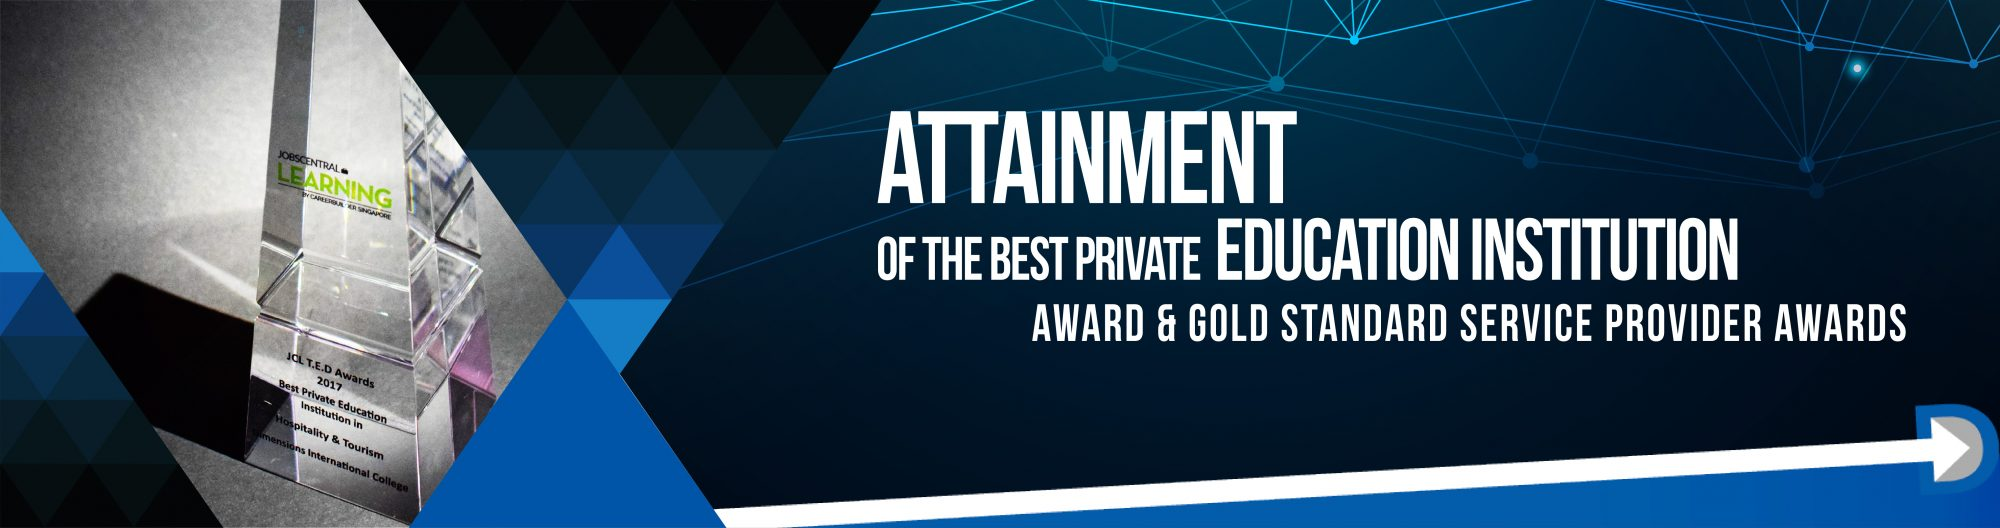 Attainment of the Best Private Education Institution Award & Gold Standard Service Provider Awards